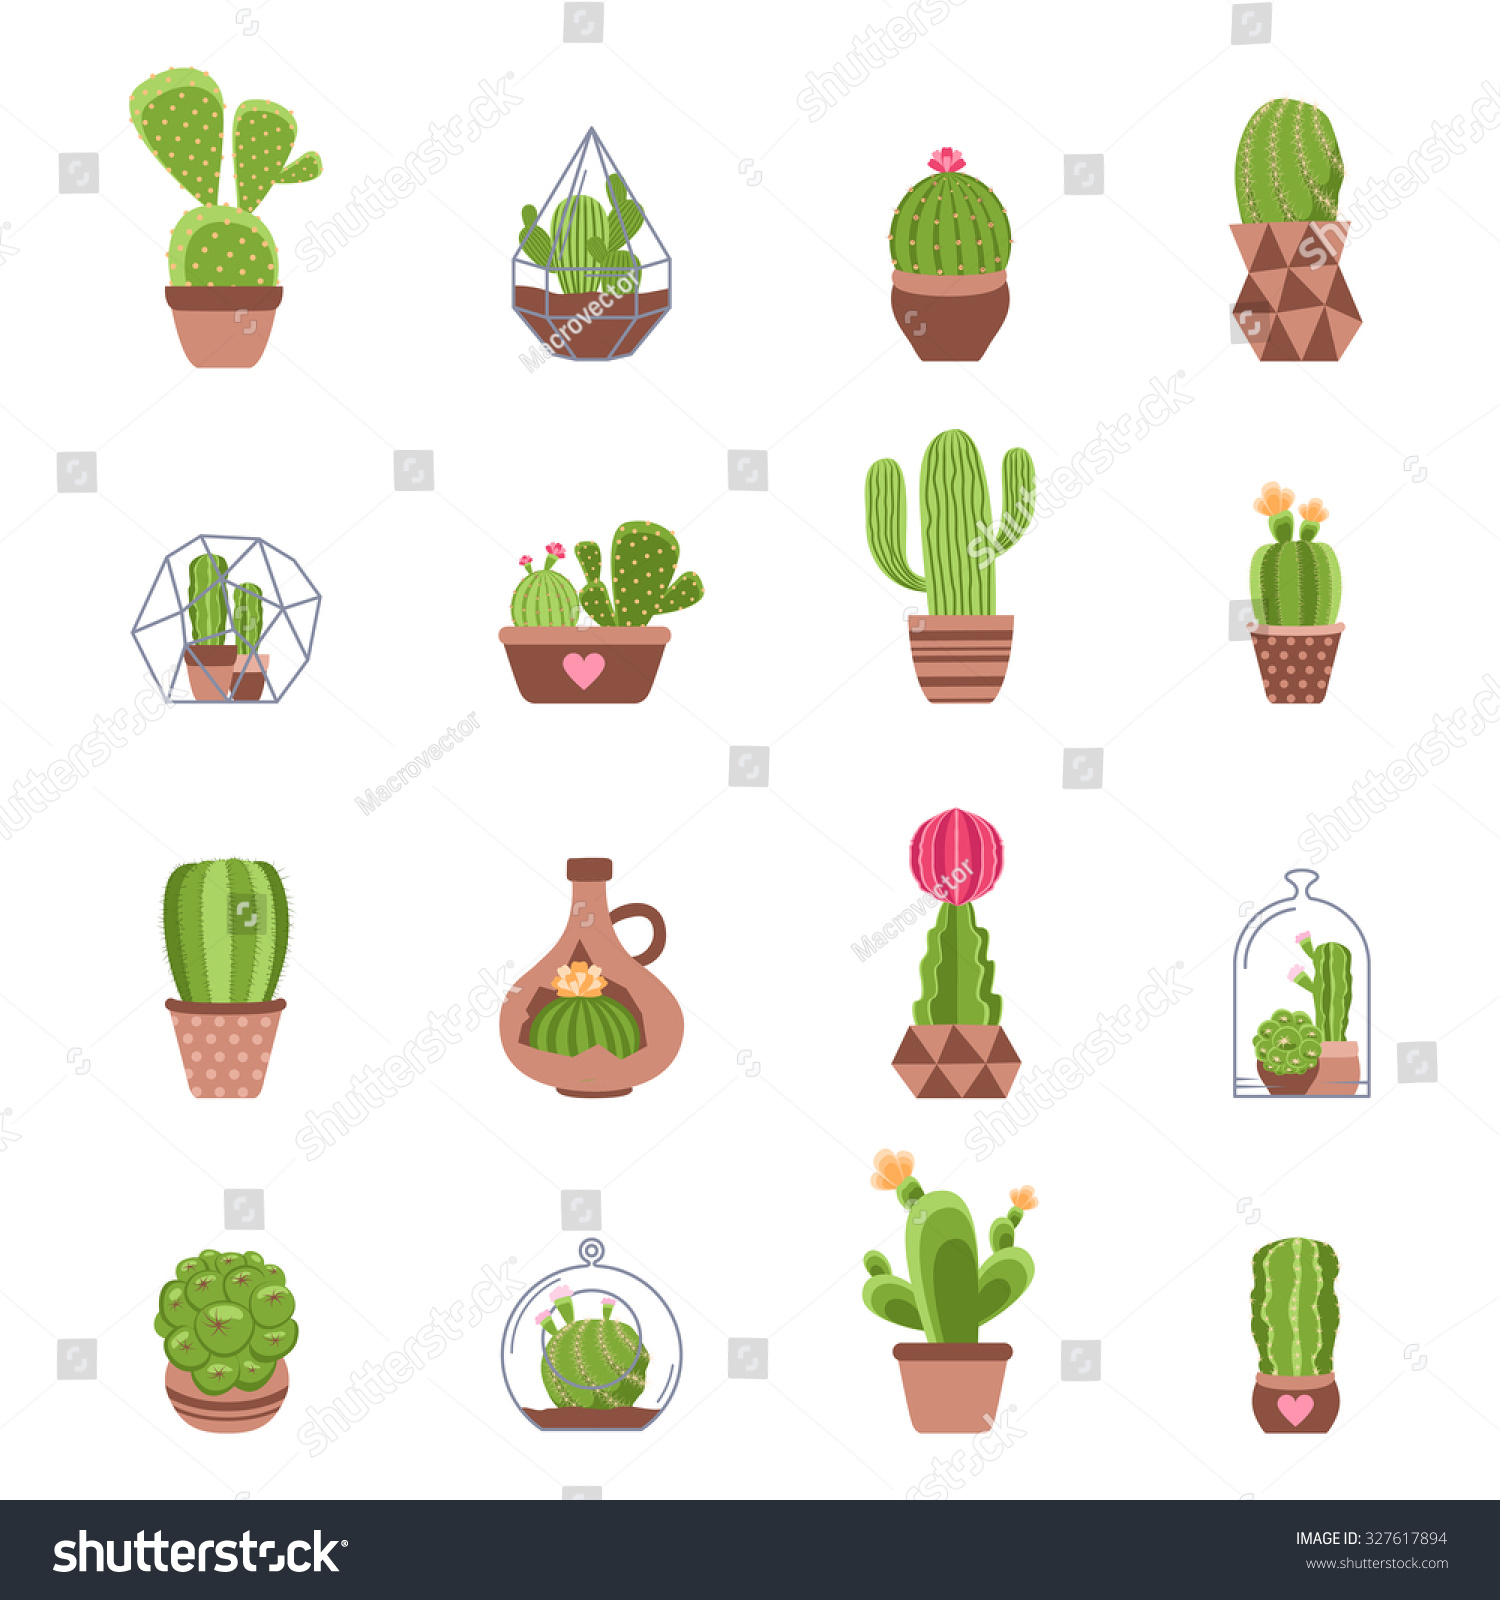 Types Of Cacti And Their Uses Pictures To Pin On Pinterest